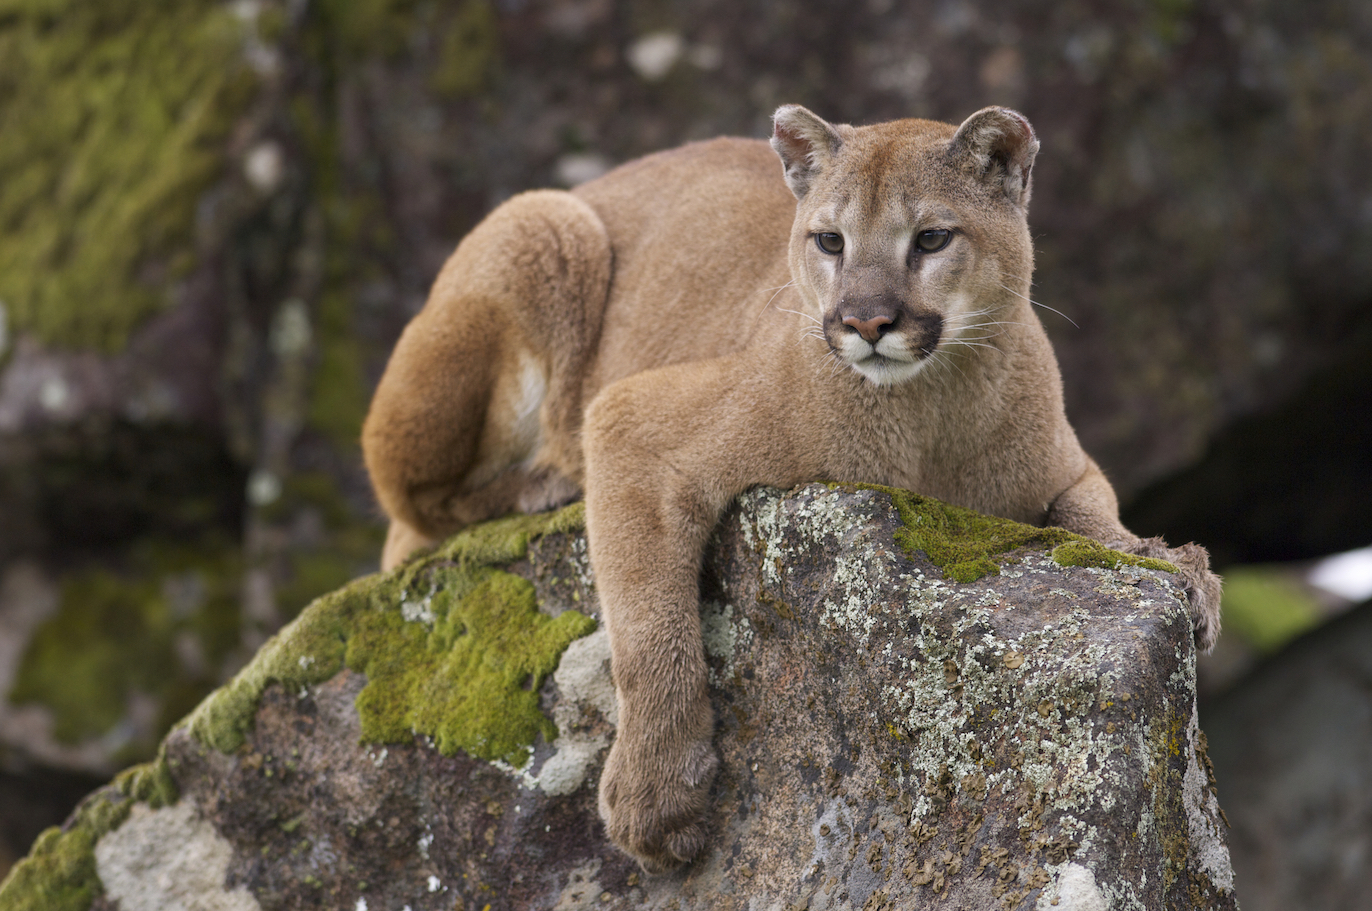 Mountain lions don't like encountering humans any more than humans like bumping into them on hiking trails, a new study found.